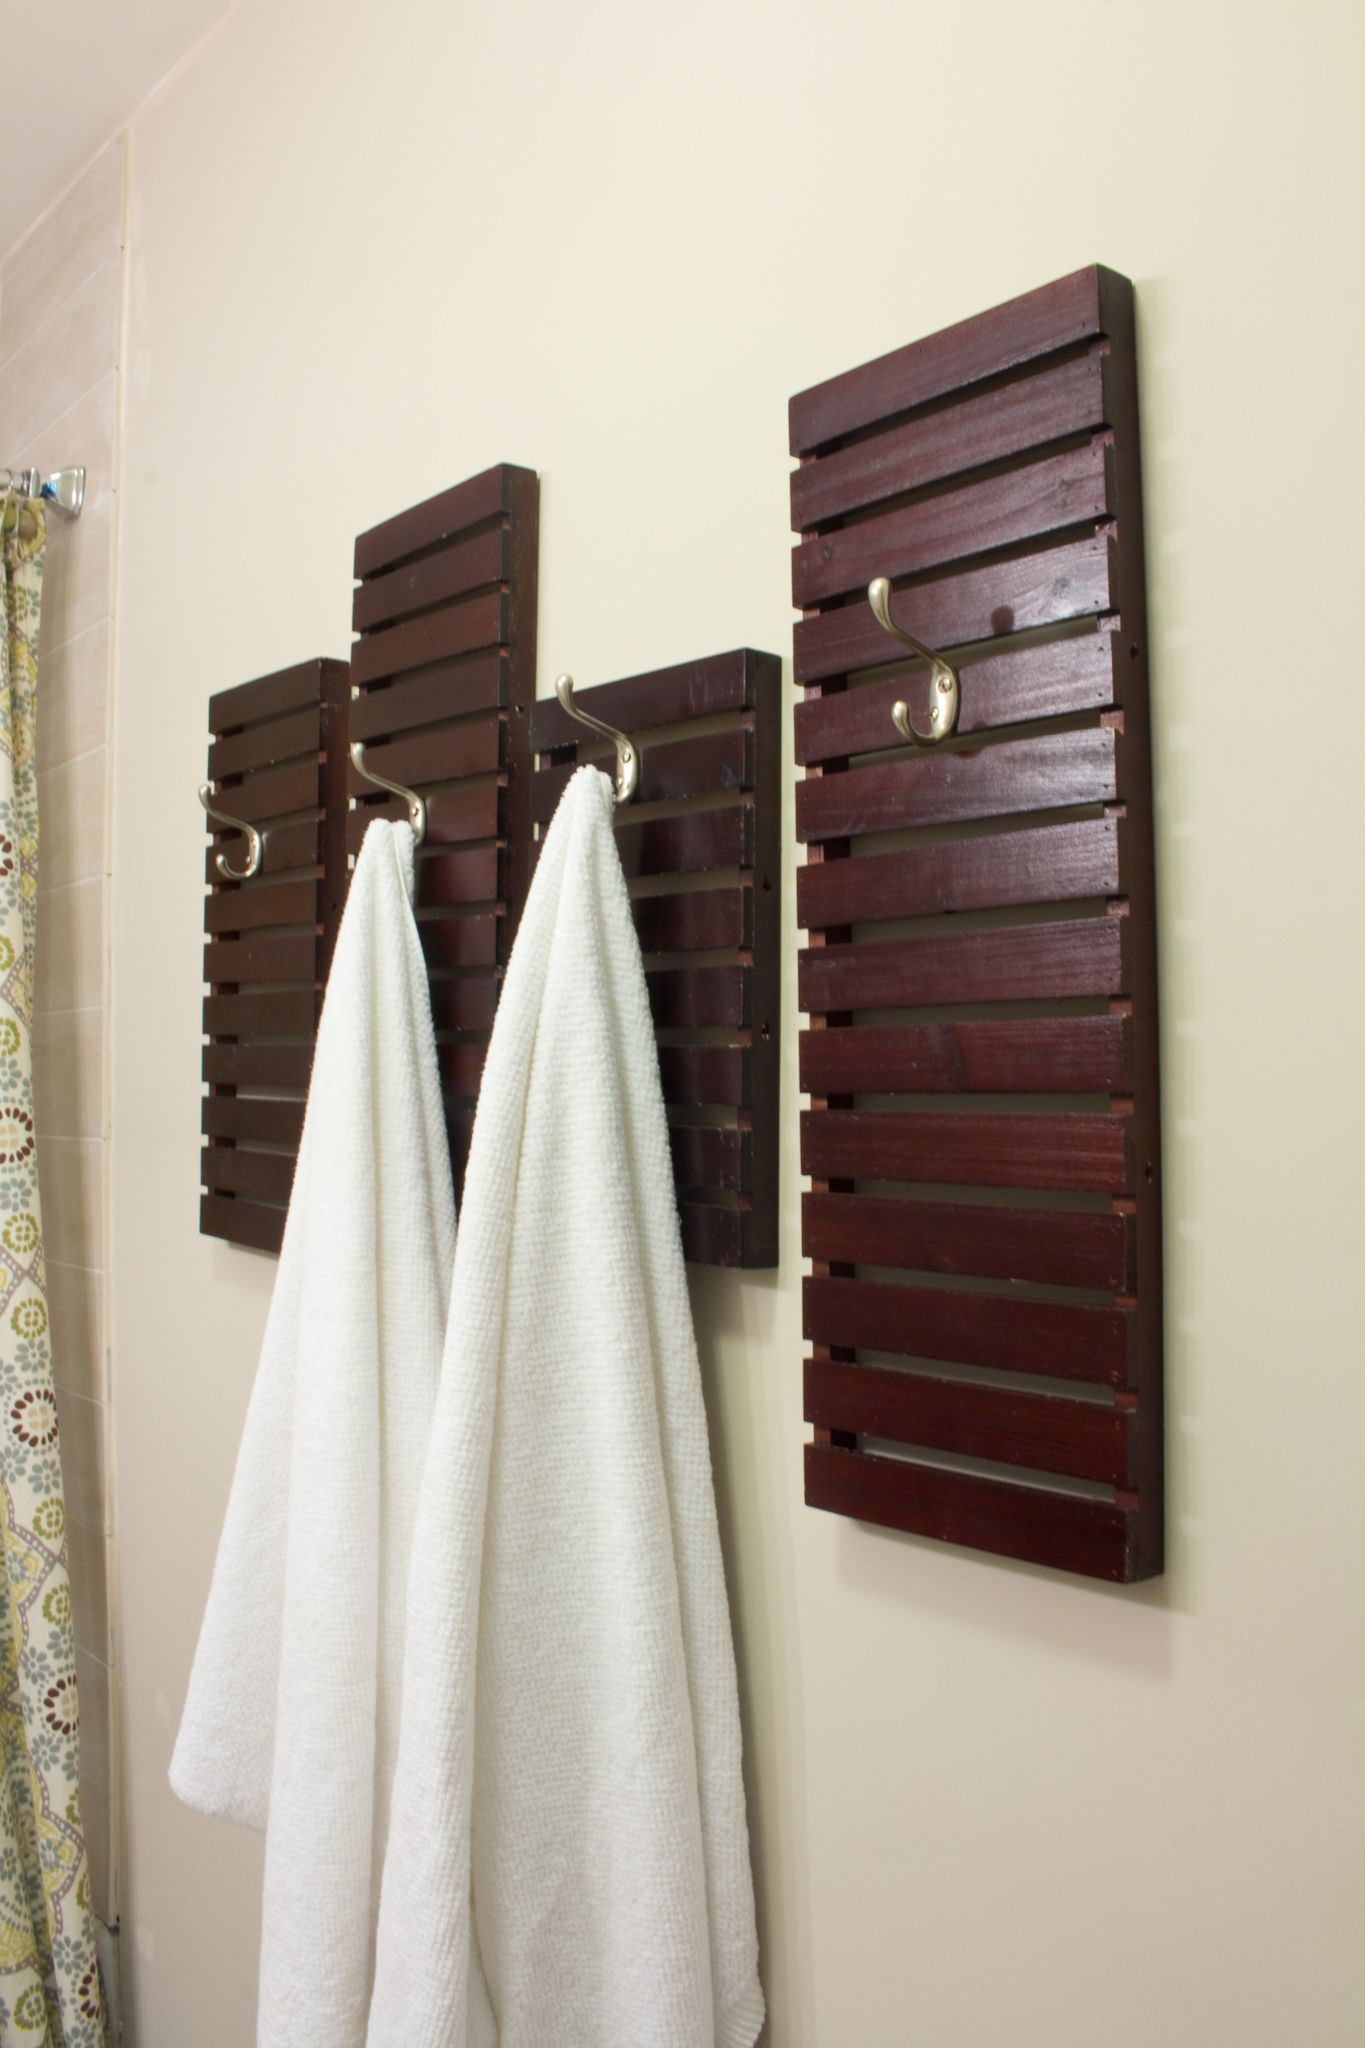 DIY Towel Rack Made From ShelvesThrift Store Upcycle